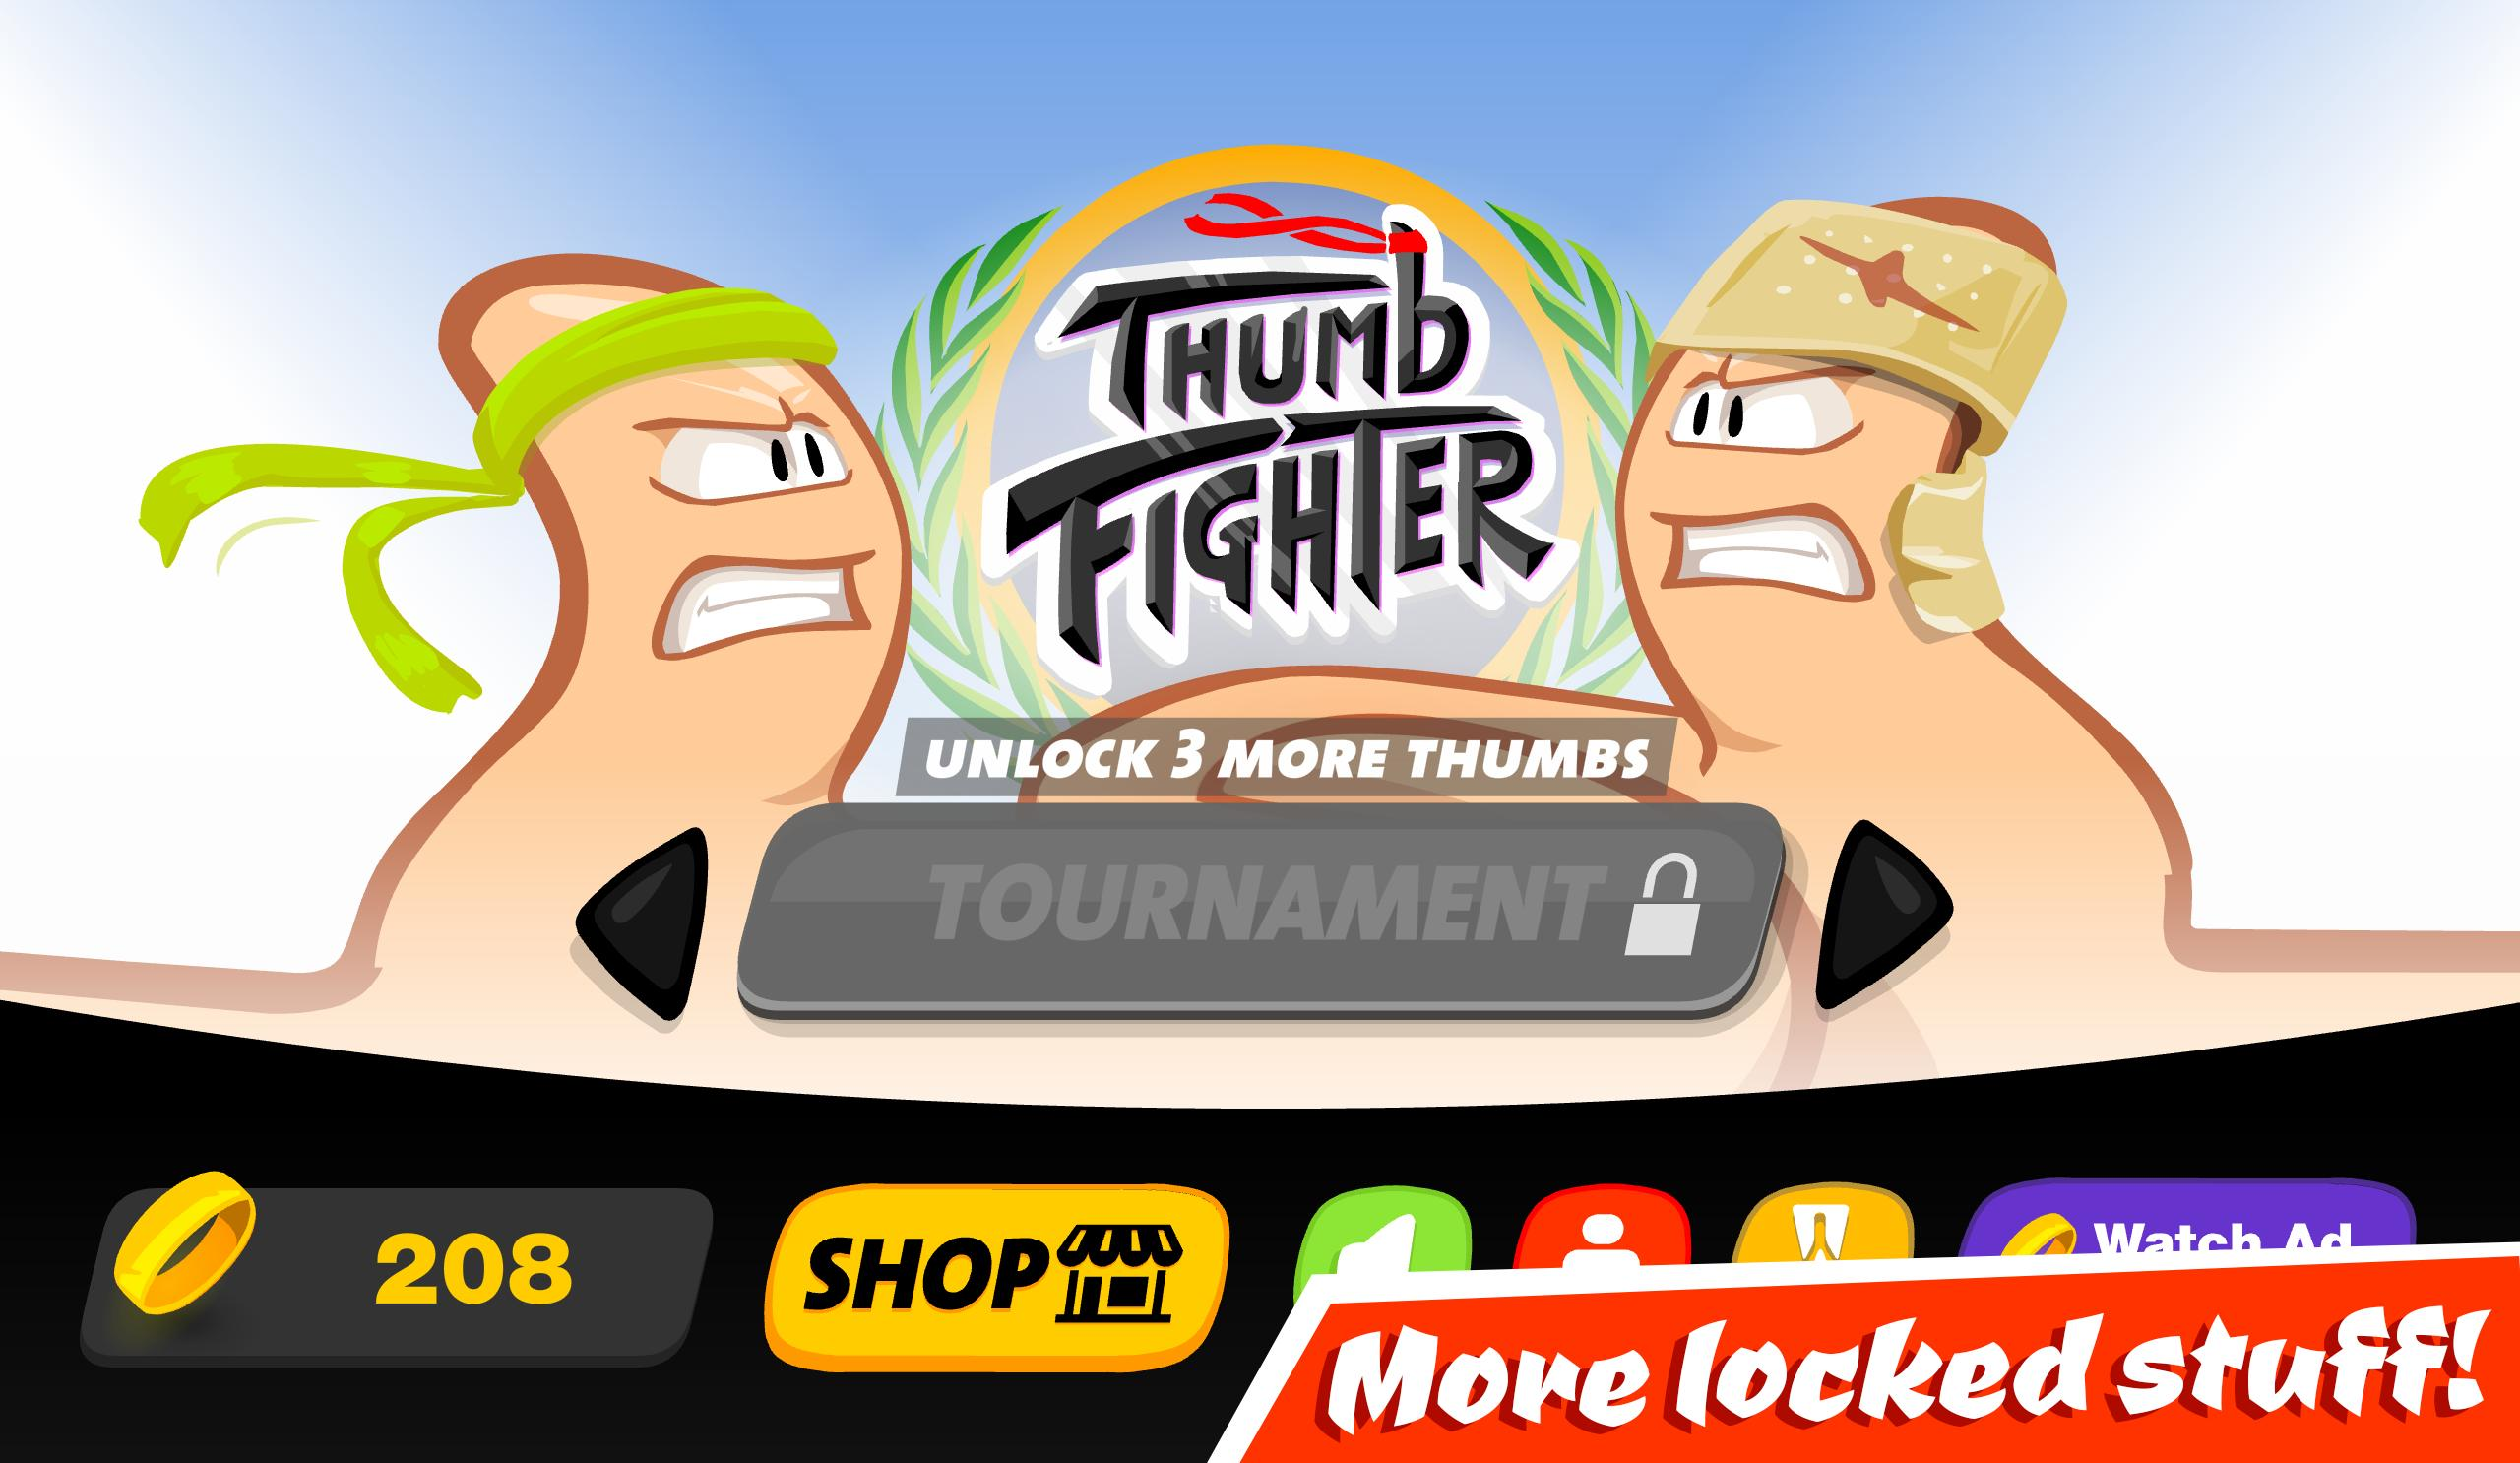 Thumb Fighter 👍 1.4.053 Screenshot 12